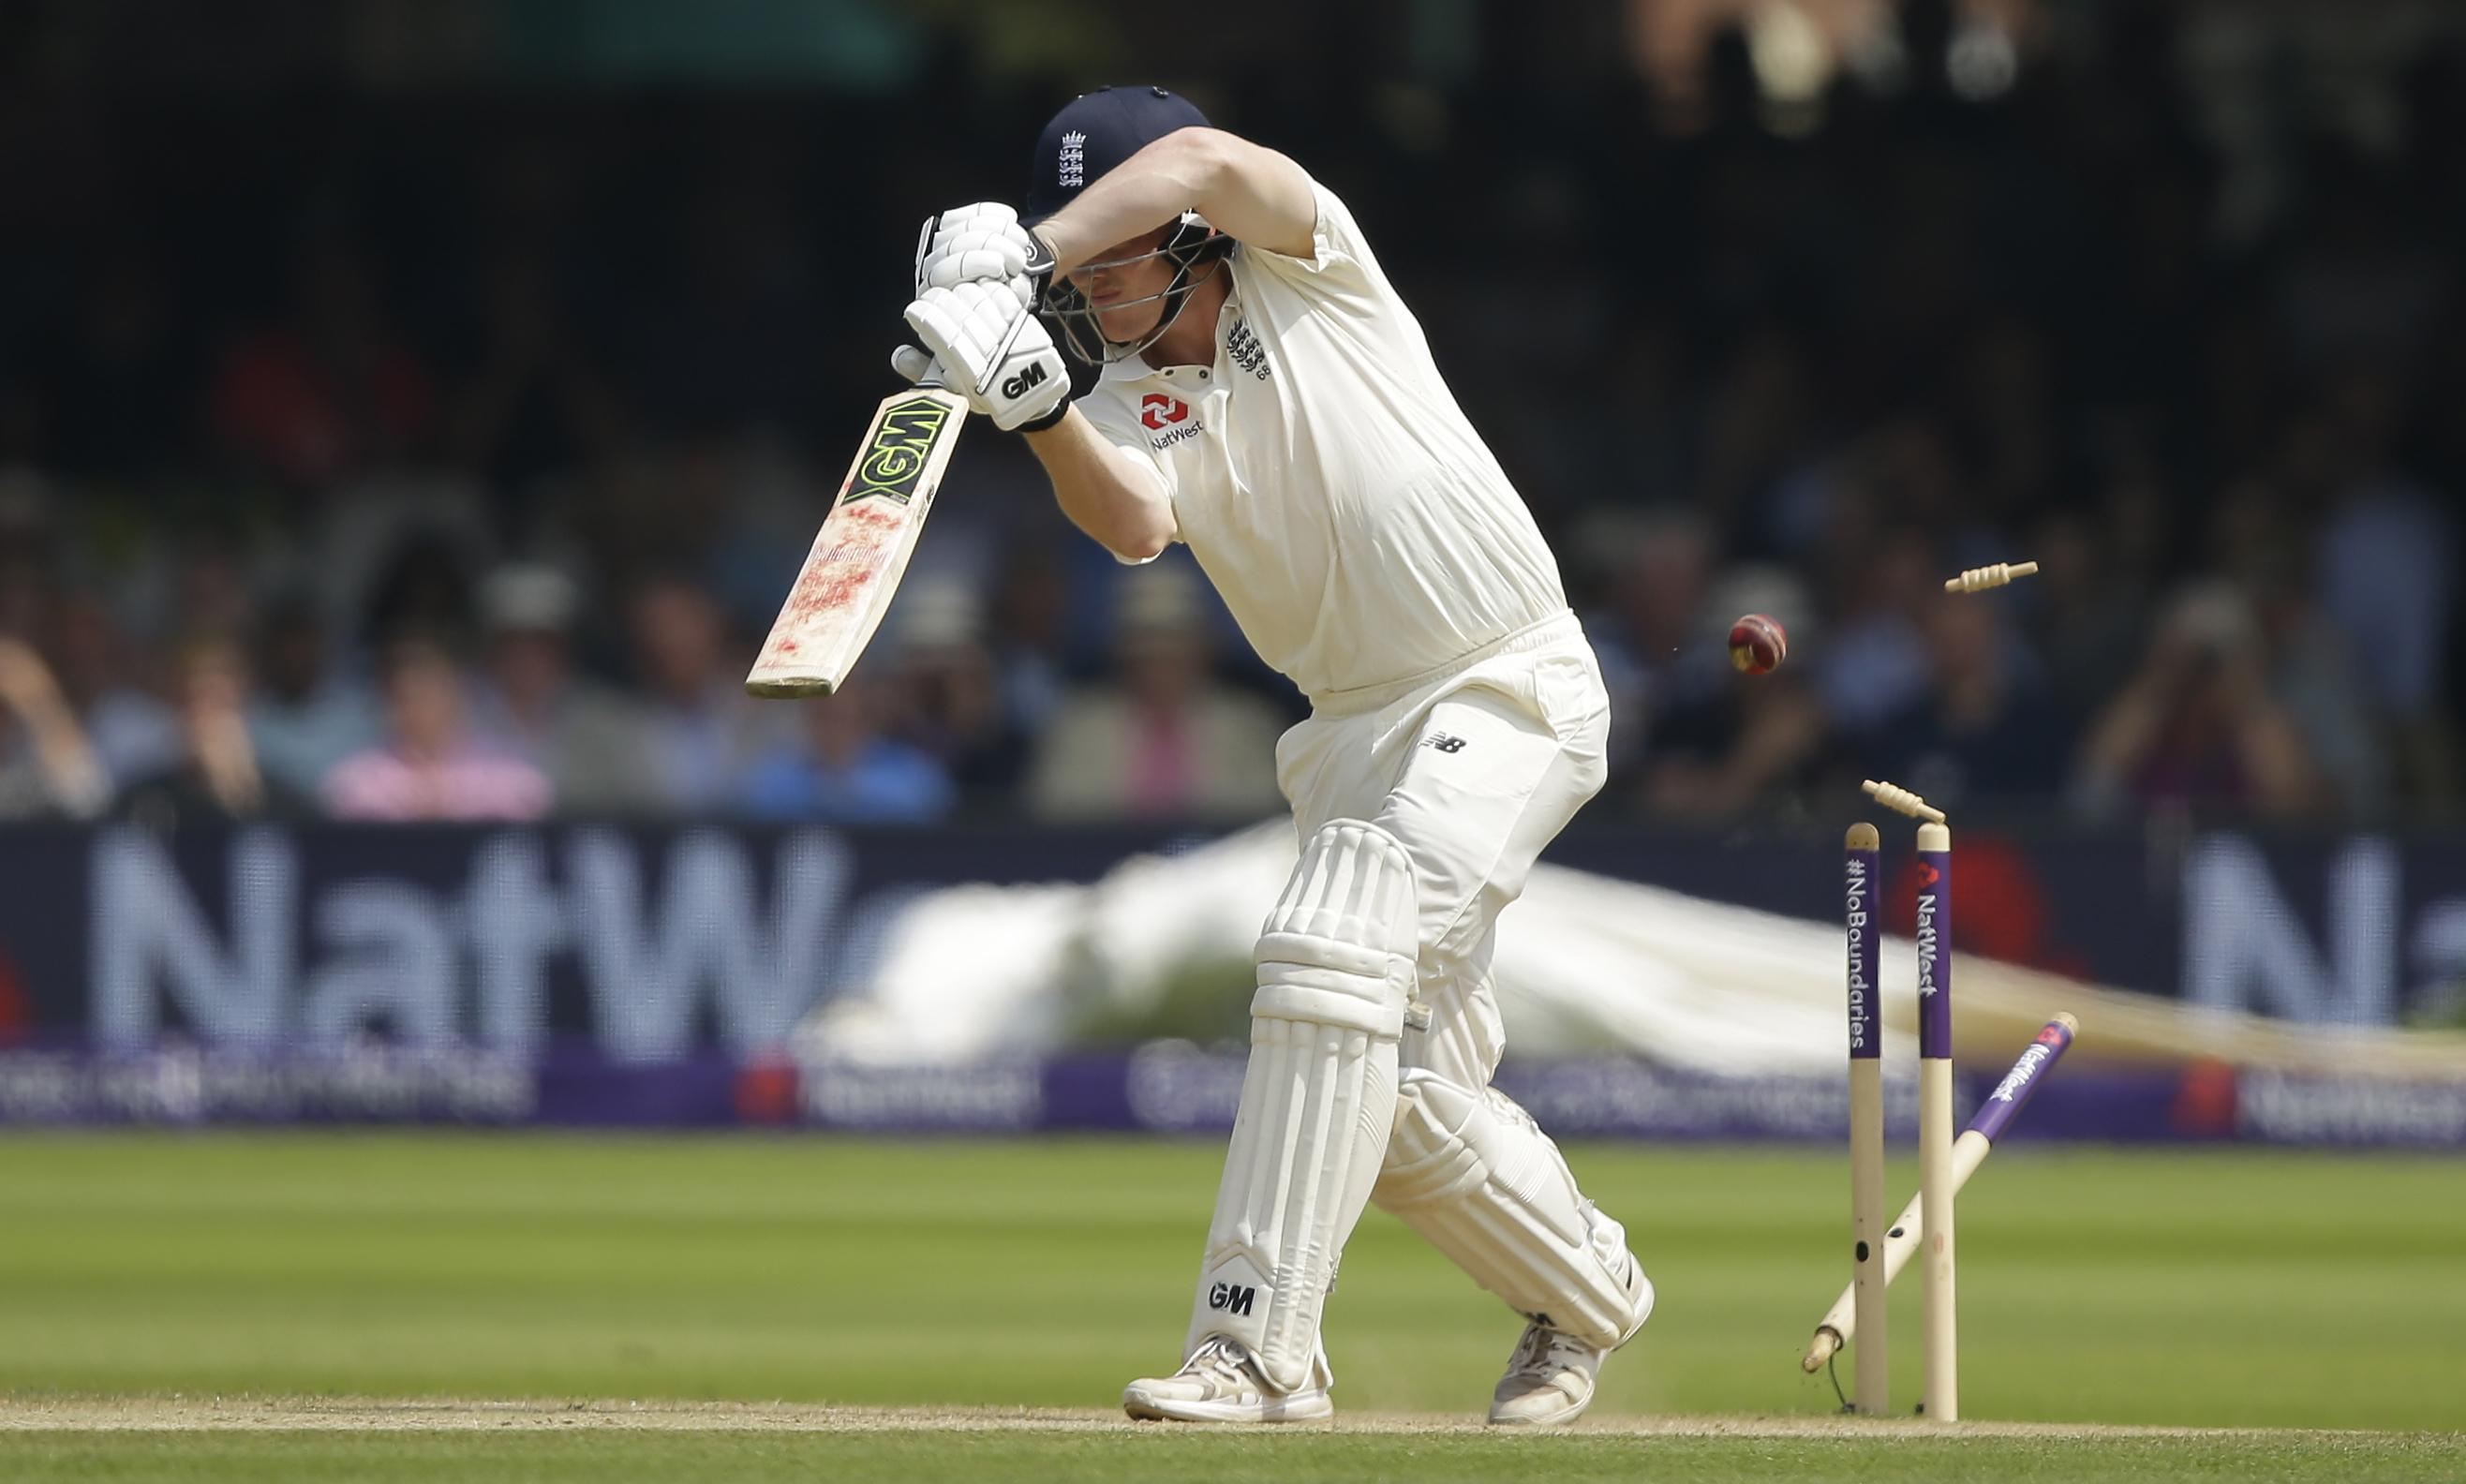 Dominic Bess sees his wicket shattered as England crashed to 242 all-out